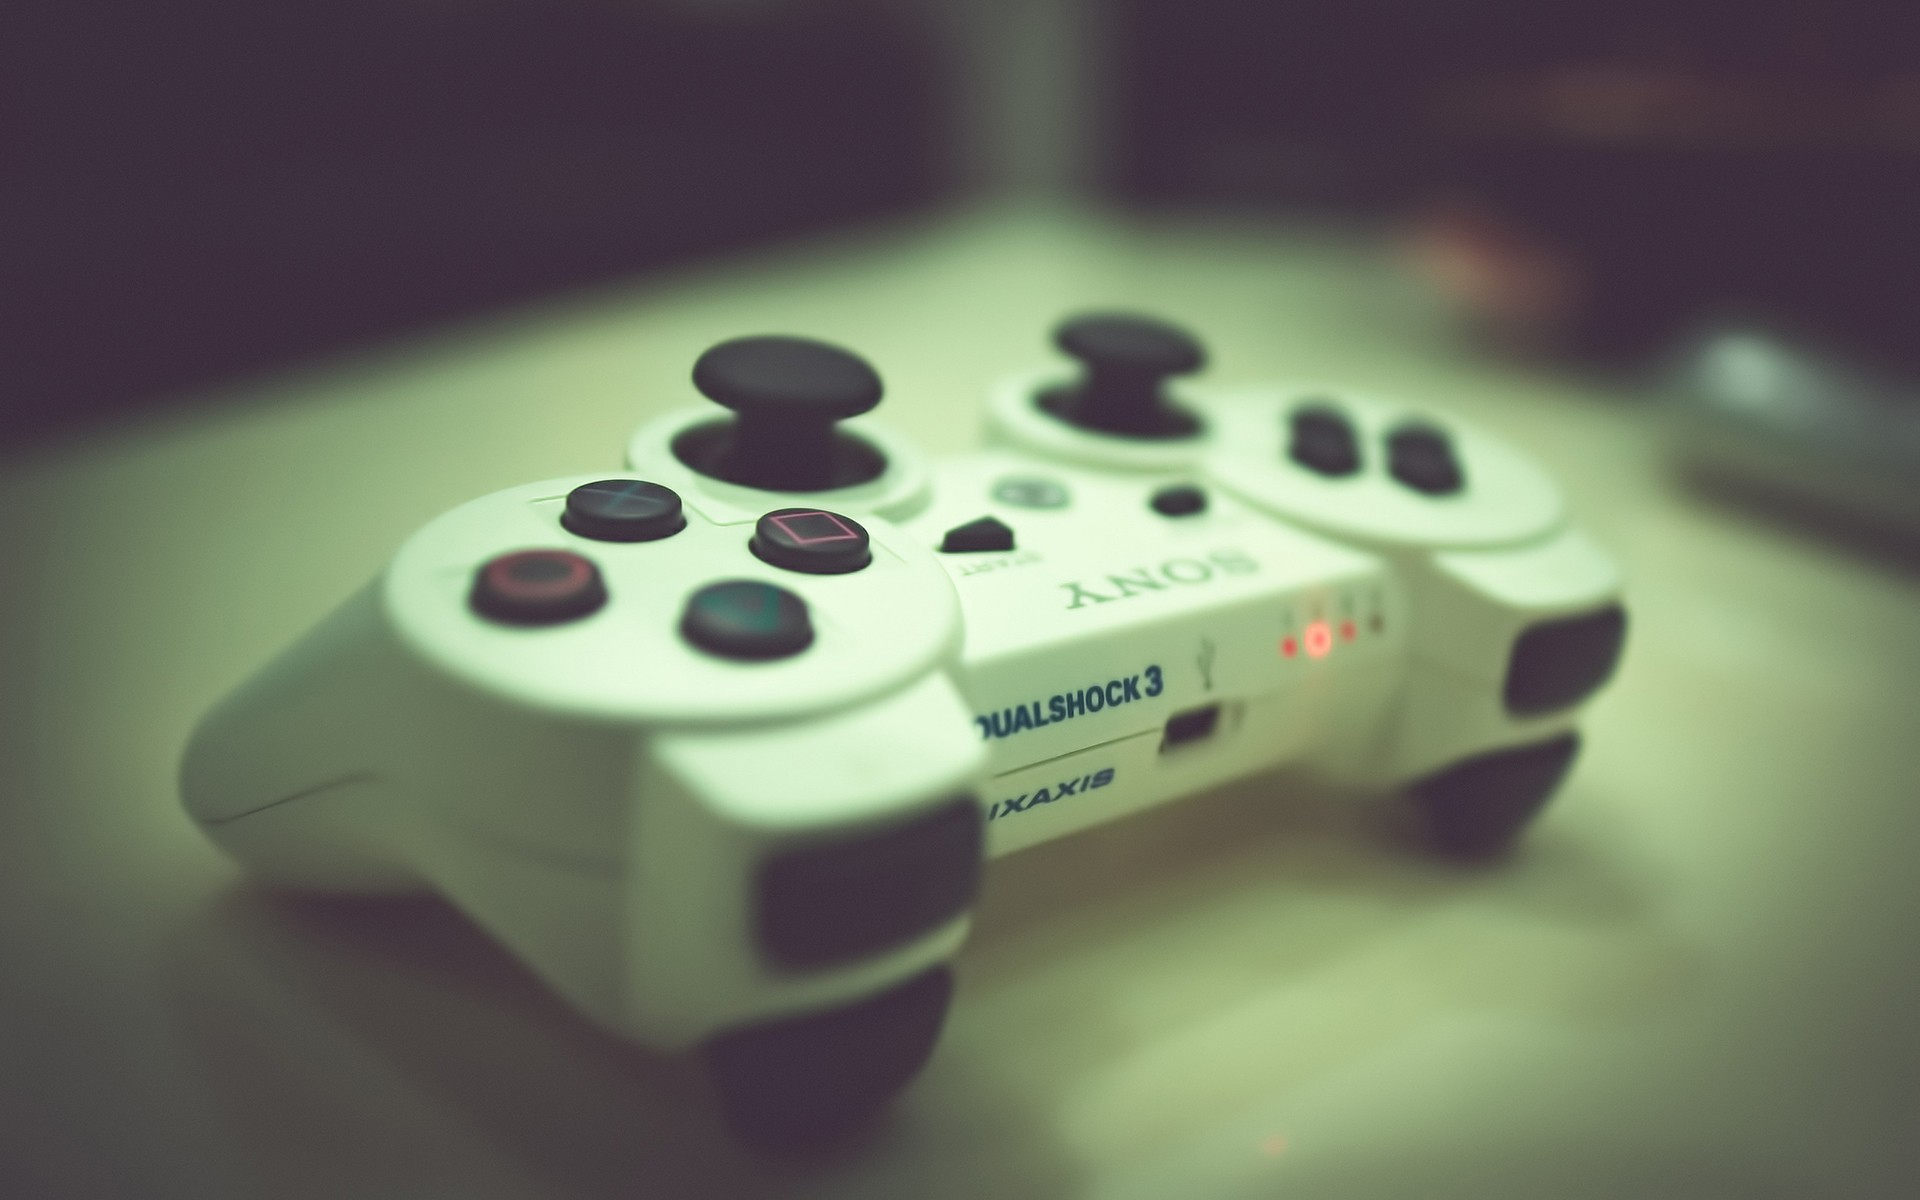 Gamer Thug Controller Hd Wallpapers: 5 Awesome HD Gaming Controller Wallpapers